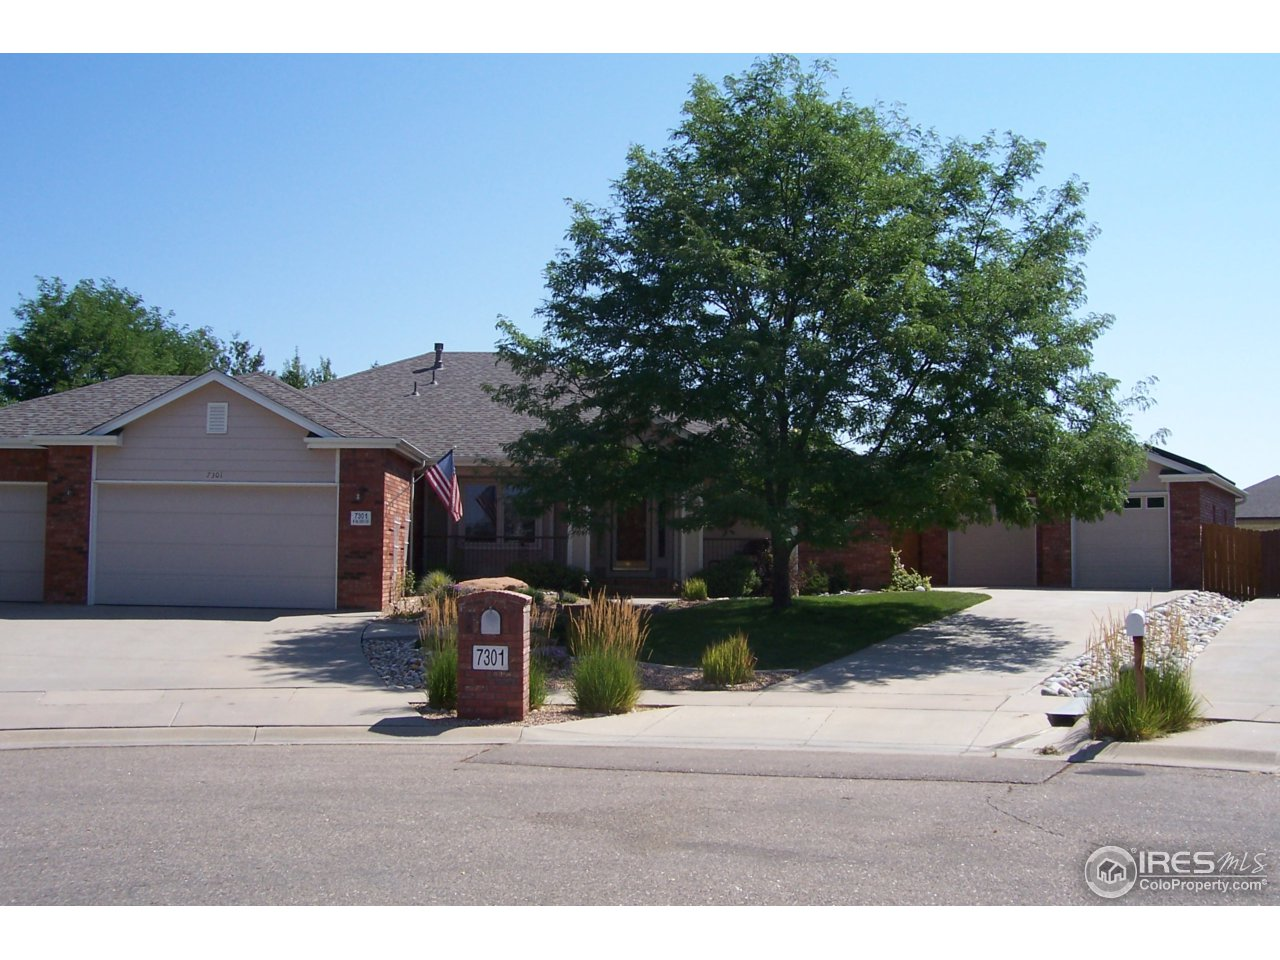 7301 18th St Rd, Greeley, CO 80634